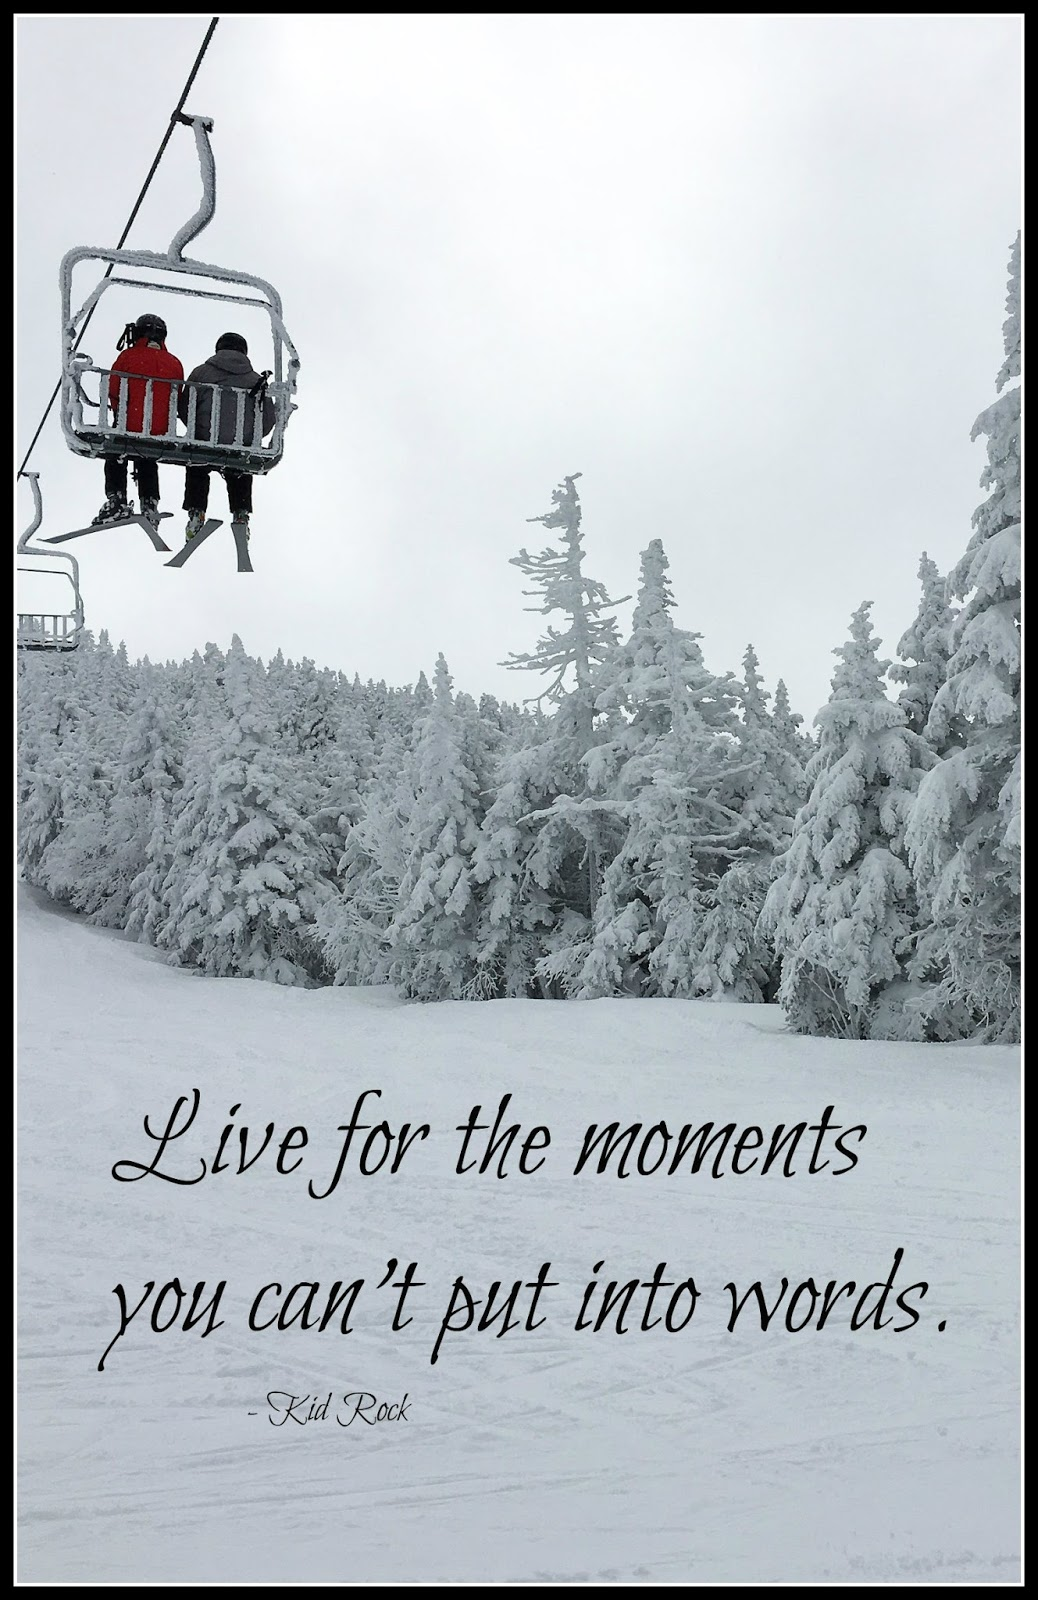 Live for the moments you can't put into words - ski weekend routines